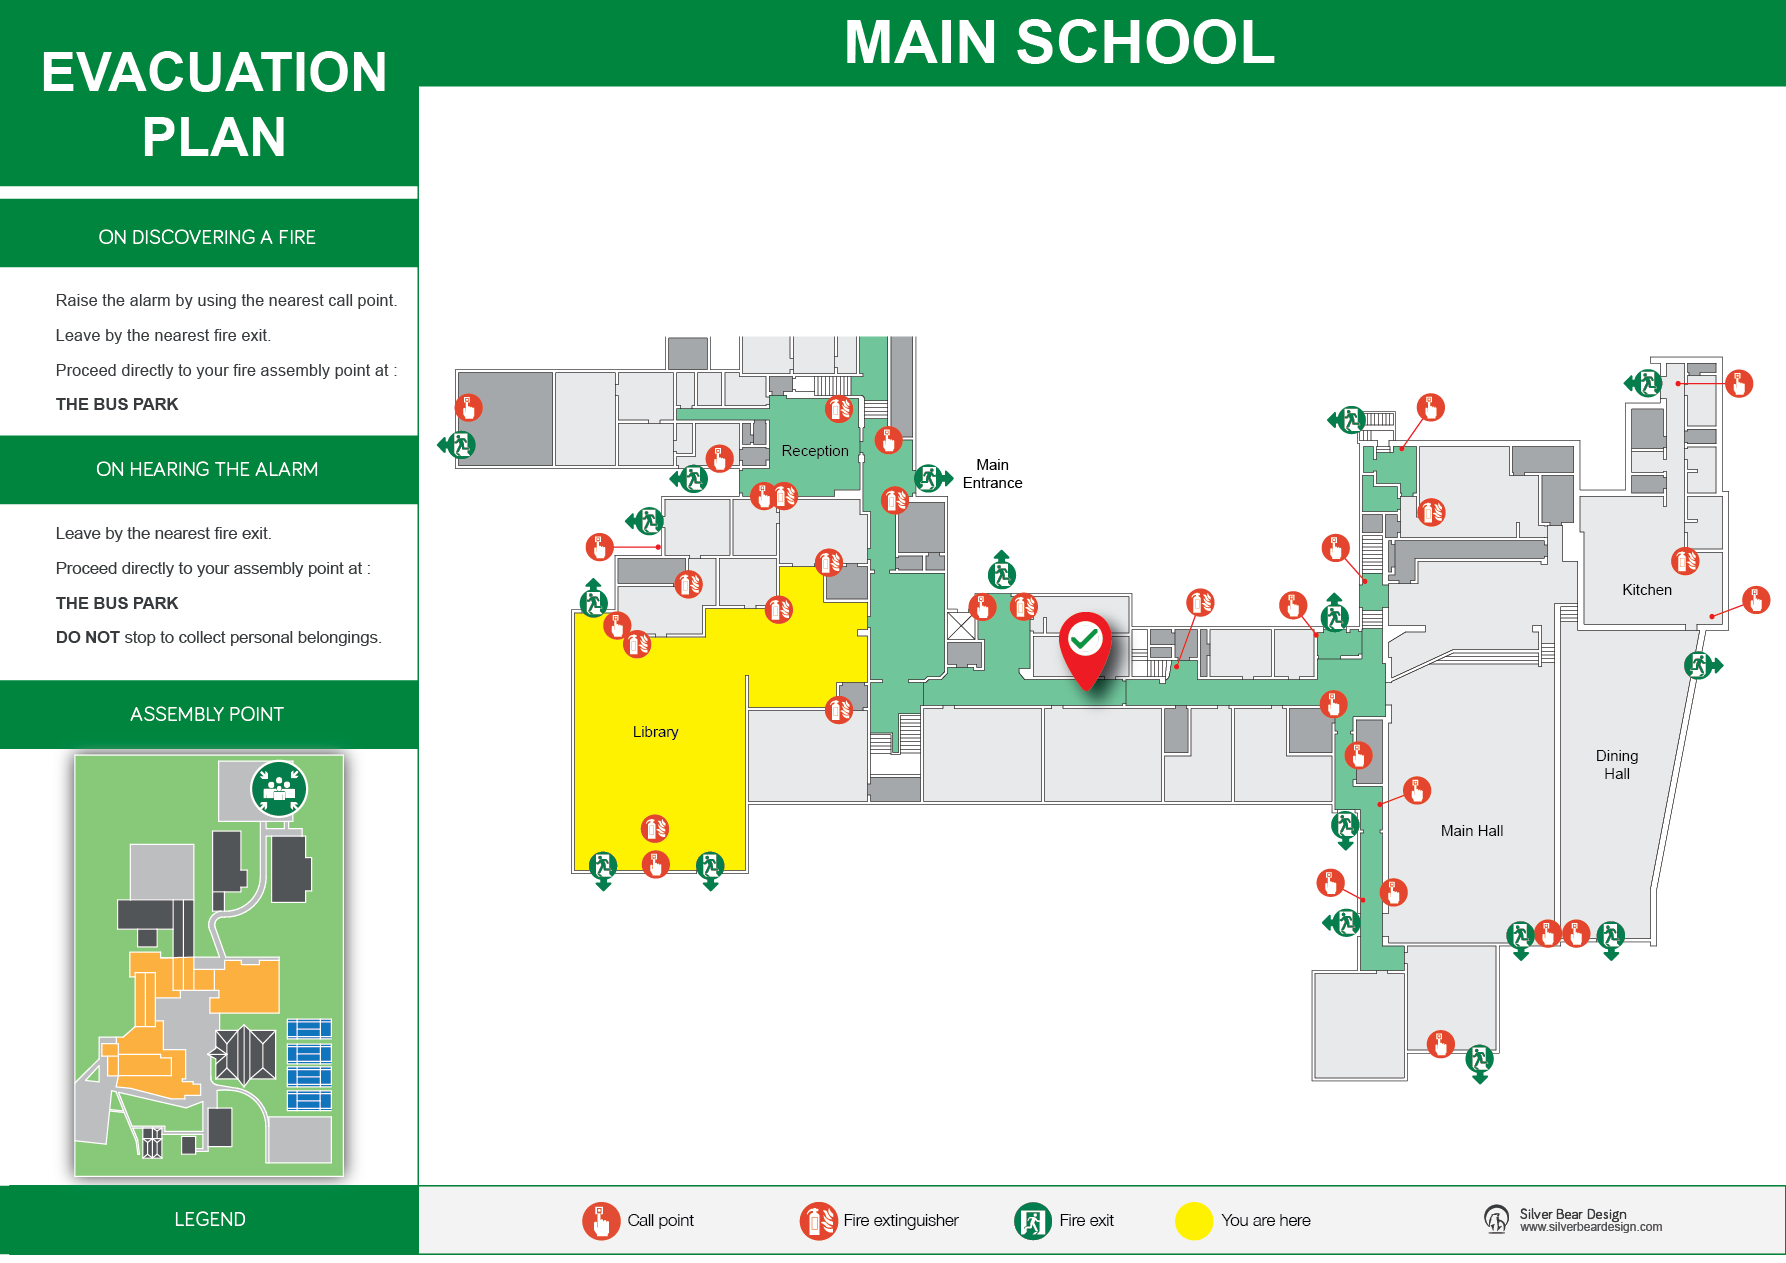 School evacuation plan fire evacuation plans pinterest for Fire plans